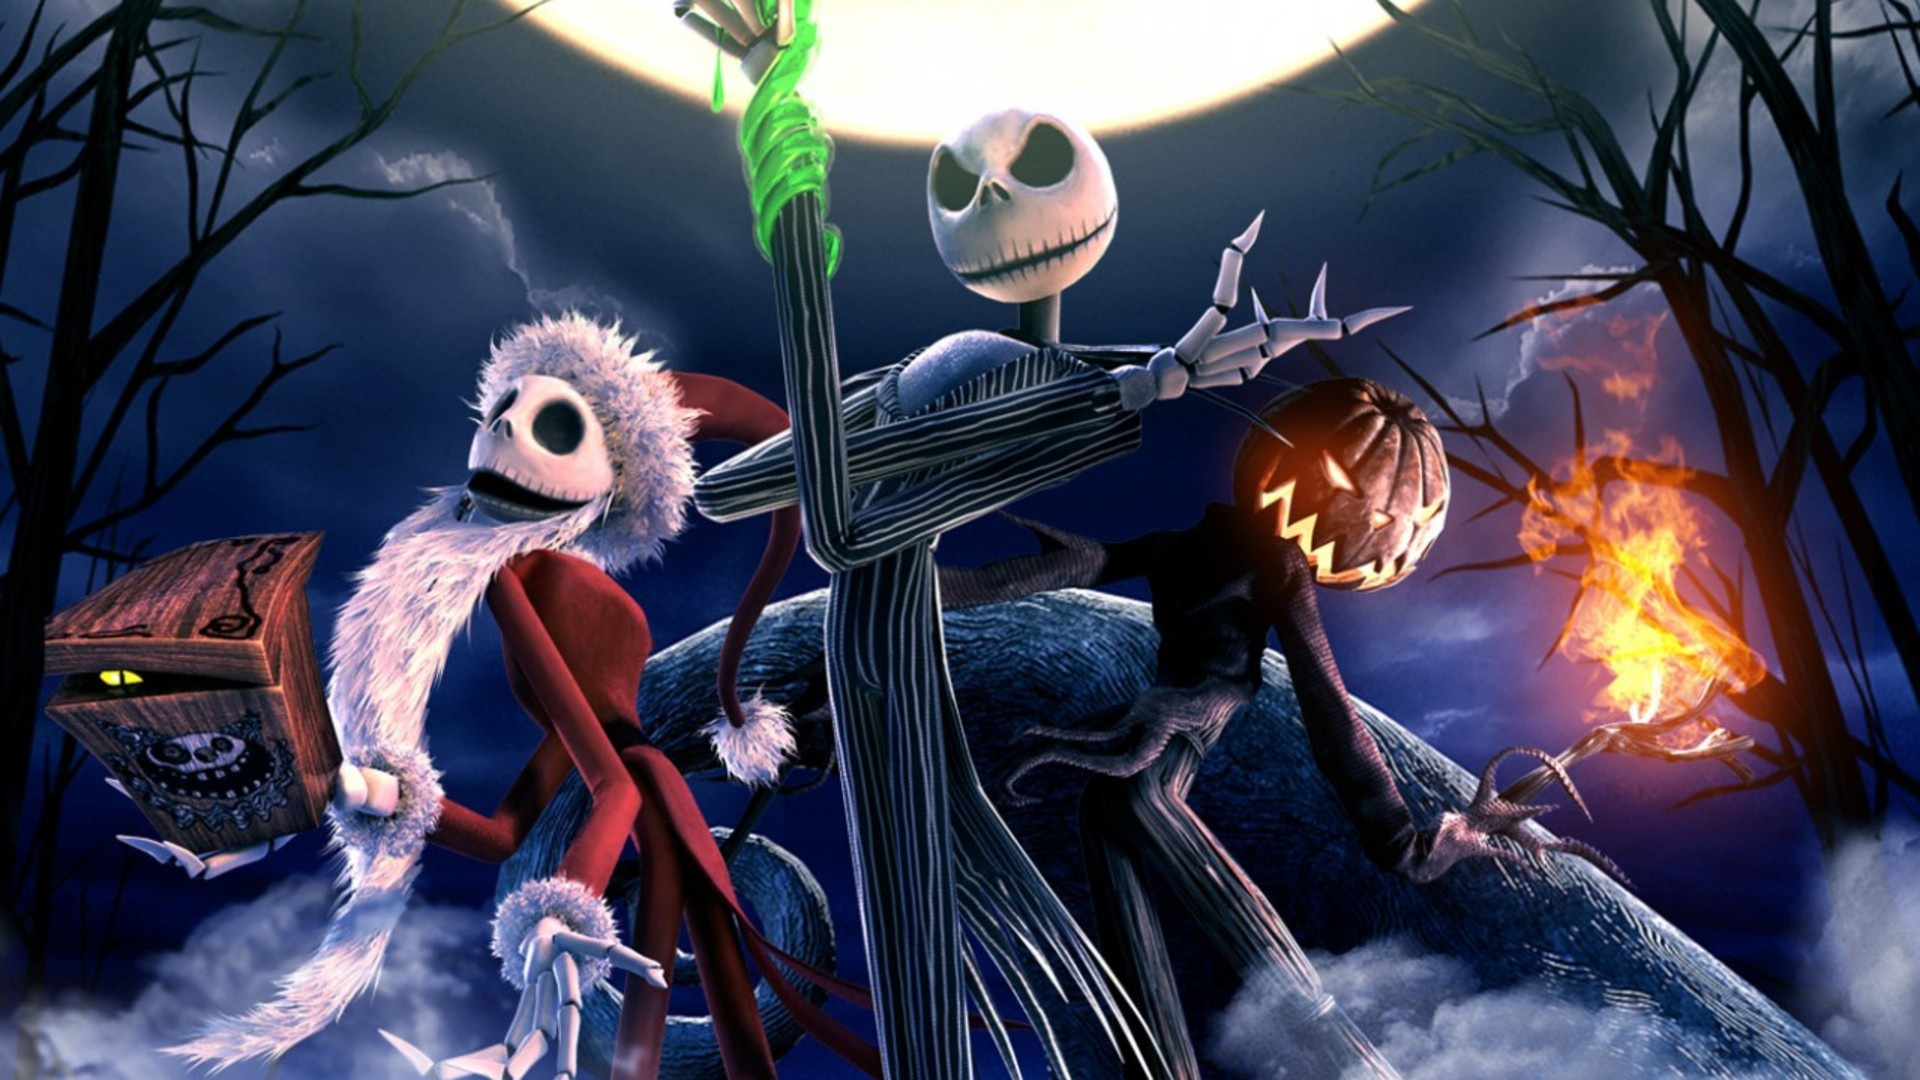 1920x1080 The Nightmare Before Christmas Skeletons desktop PC and 1920x1080